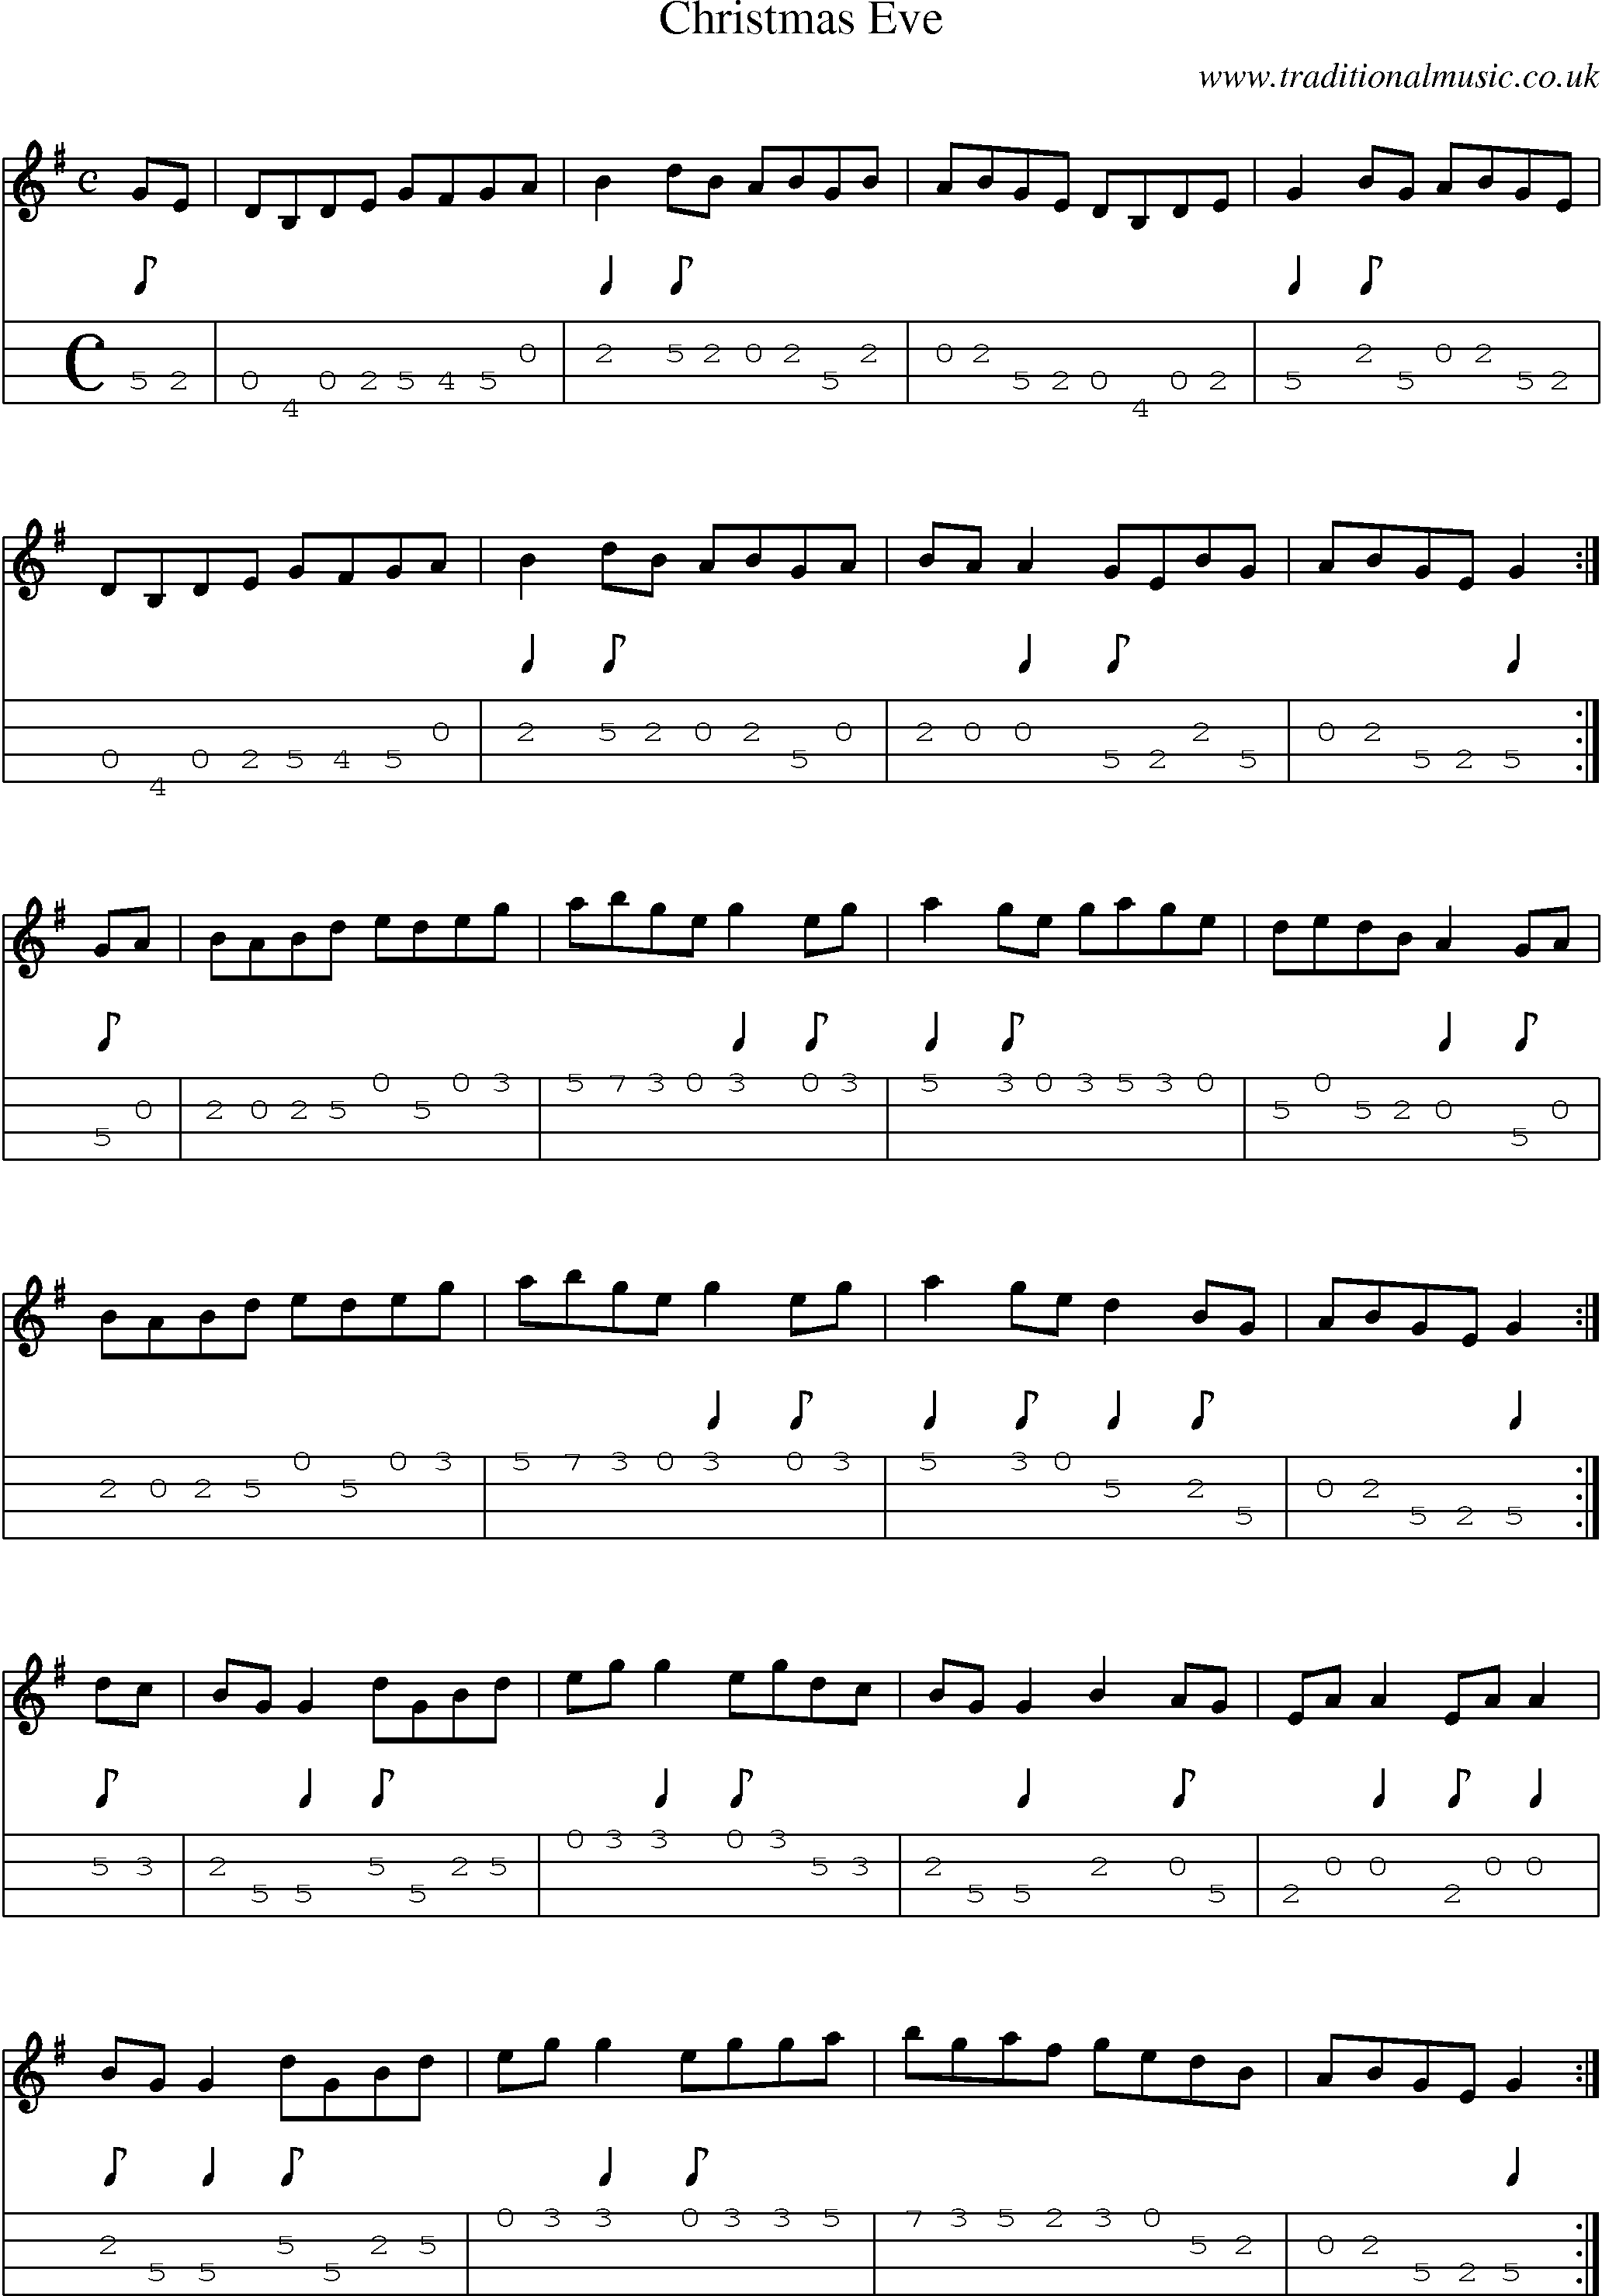 Irish Music Tune: Christmas Eve with Mandolin Tab, Sheetmusic, Midi, Mp3 and PDF